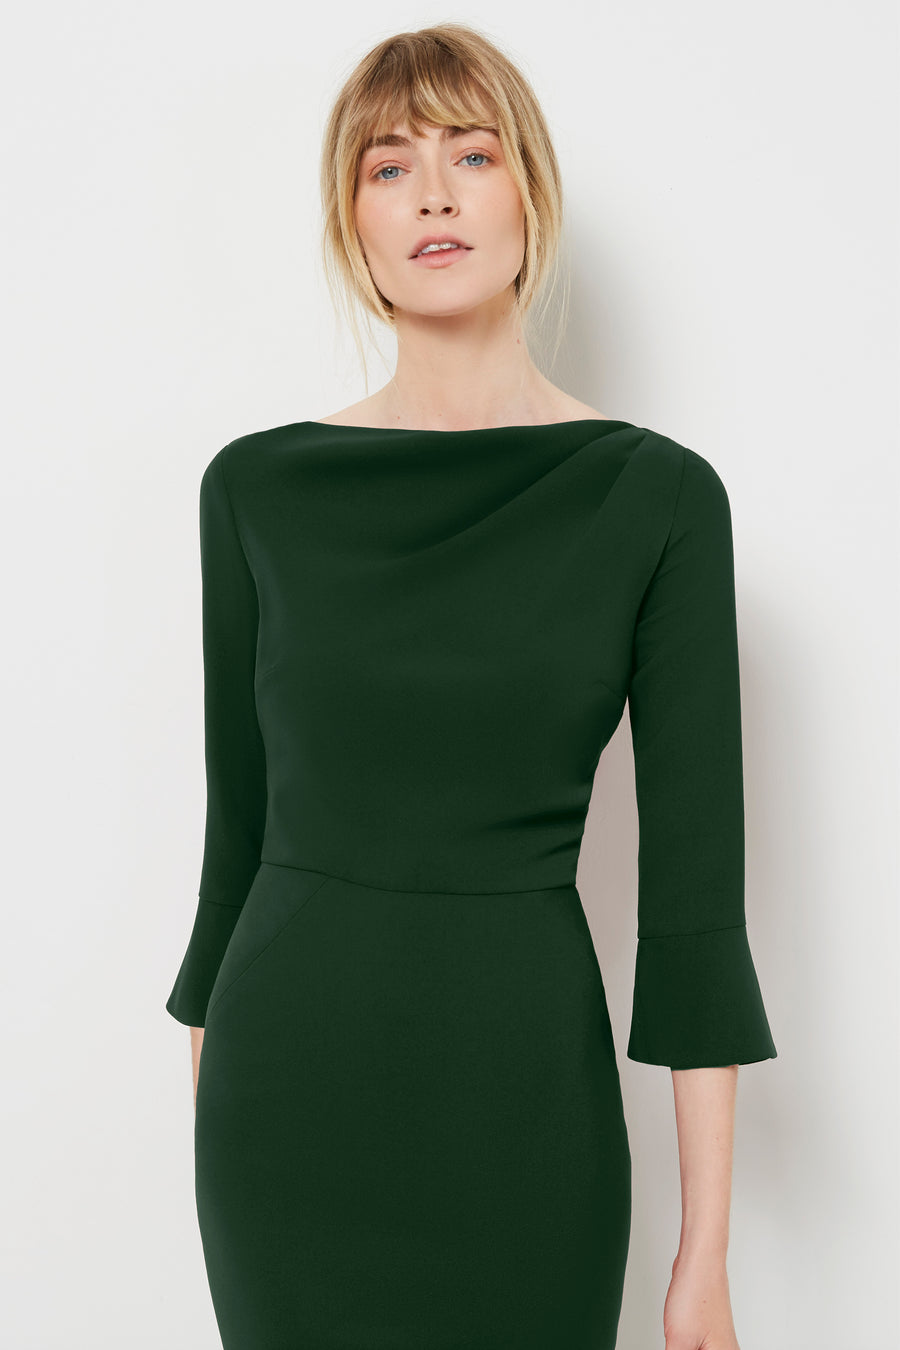 Serpentine Green Dress